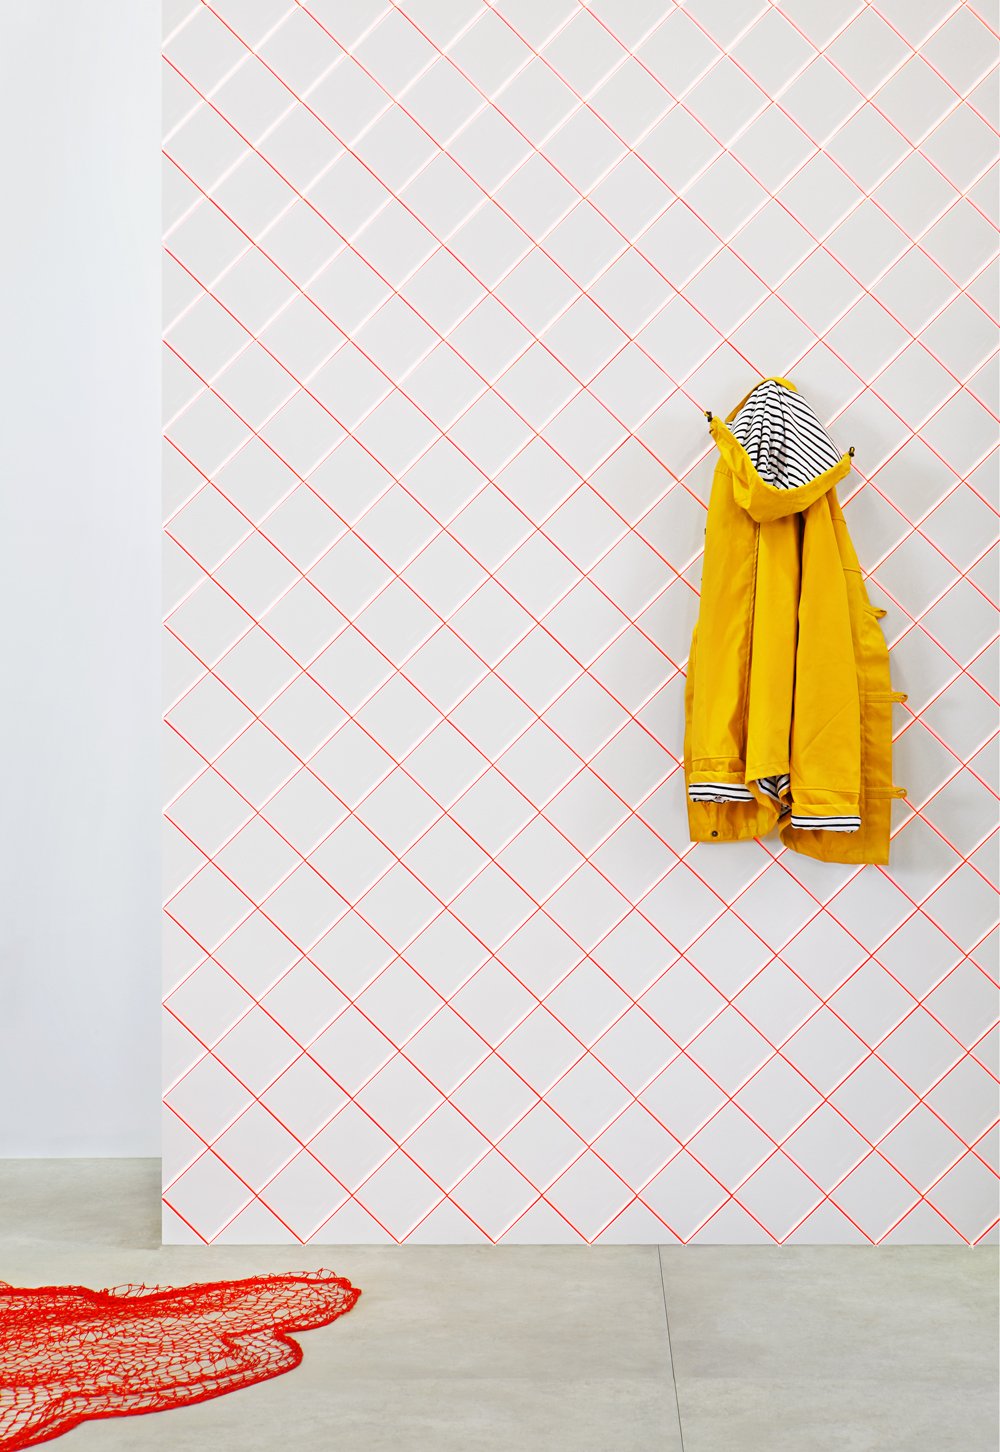 Scales, Ceramic Tiles - MUT Design (www.nikkiweedon.com)